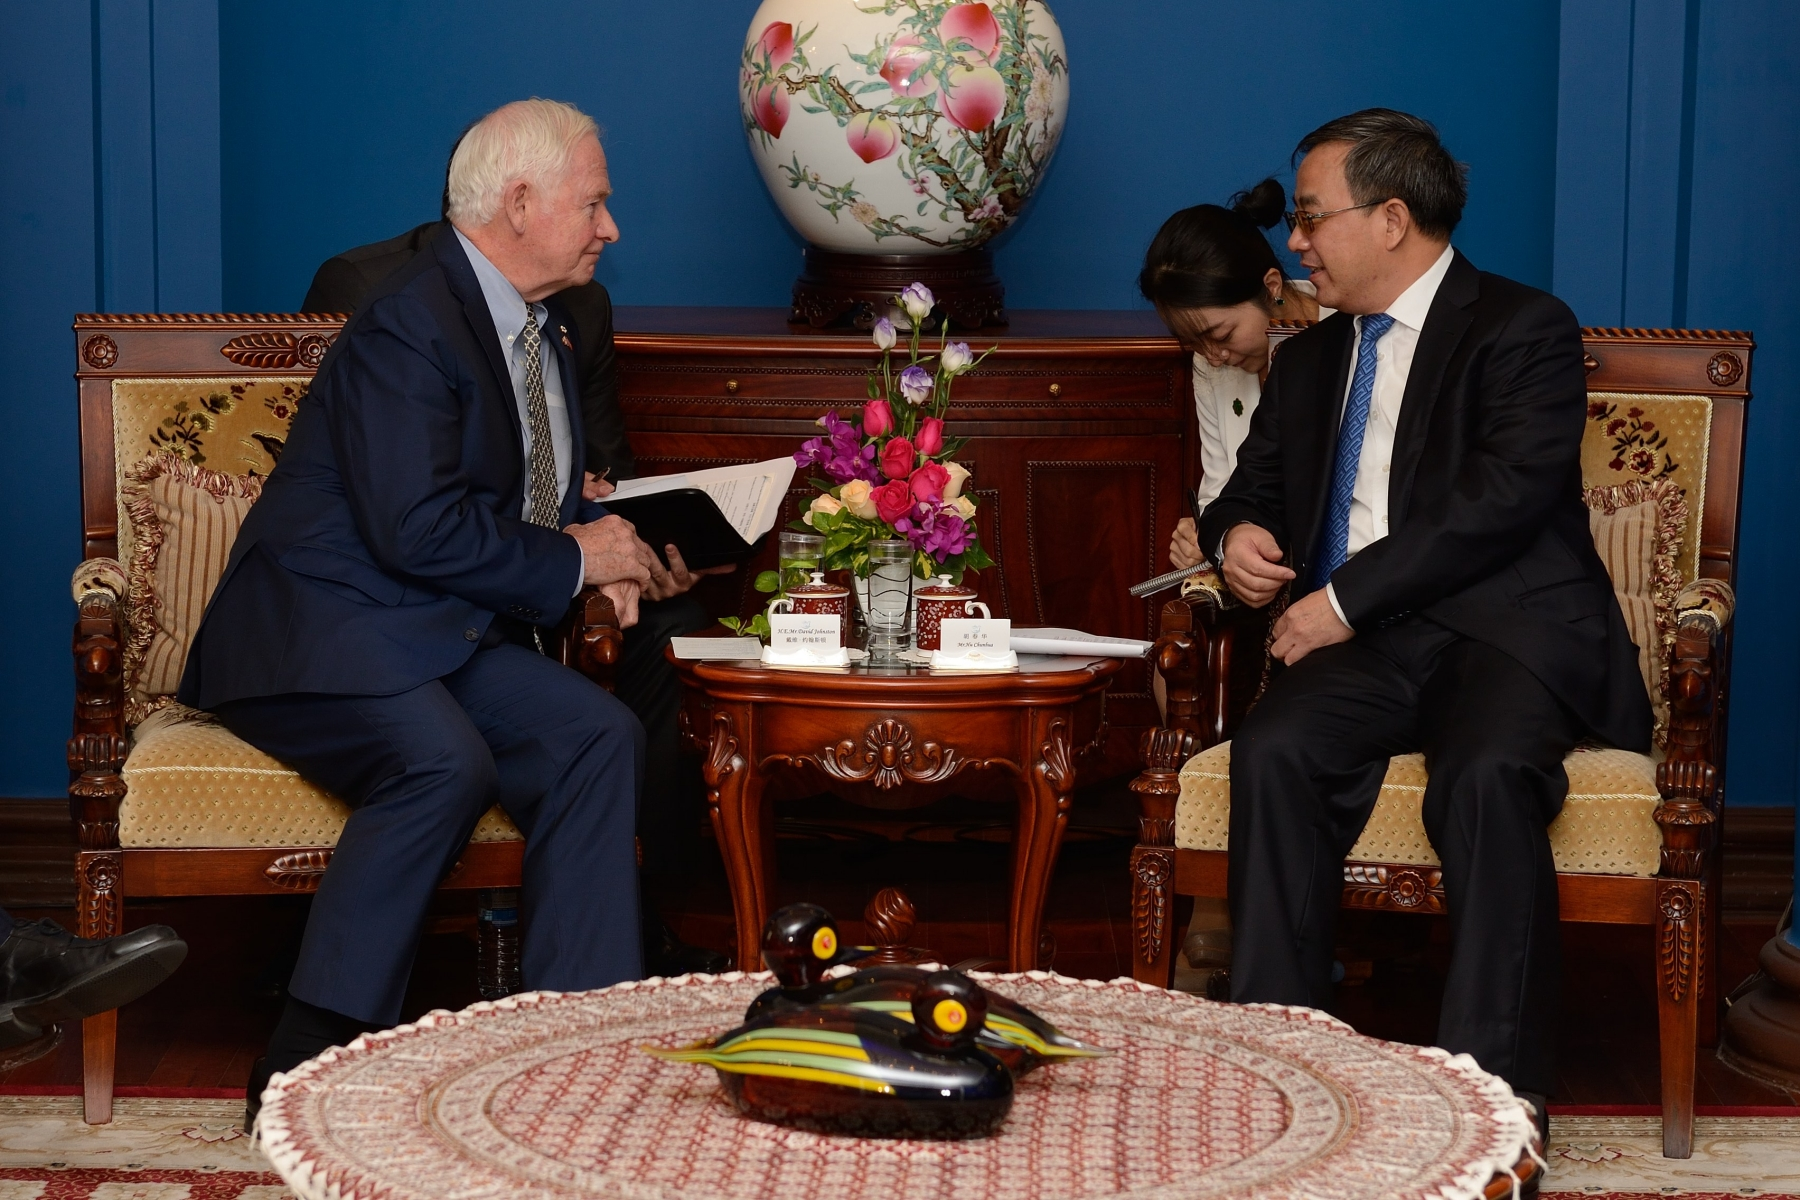 The Governor General met with His Excellency Hu Chunhua, Party Secretary of Guangdong Province to underscore the strength of the relationship between Canada and South China.